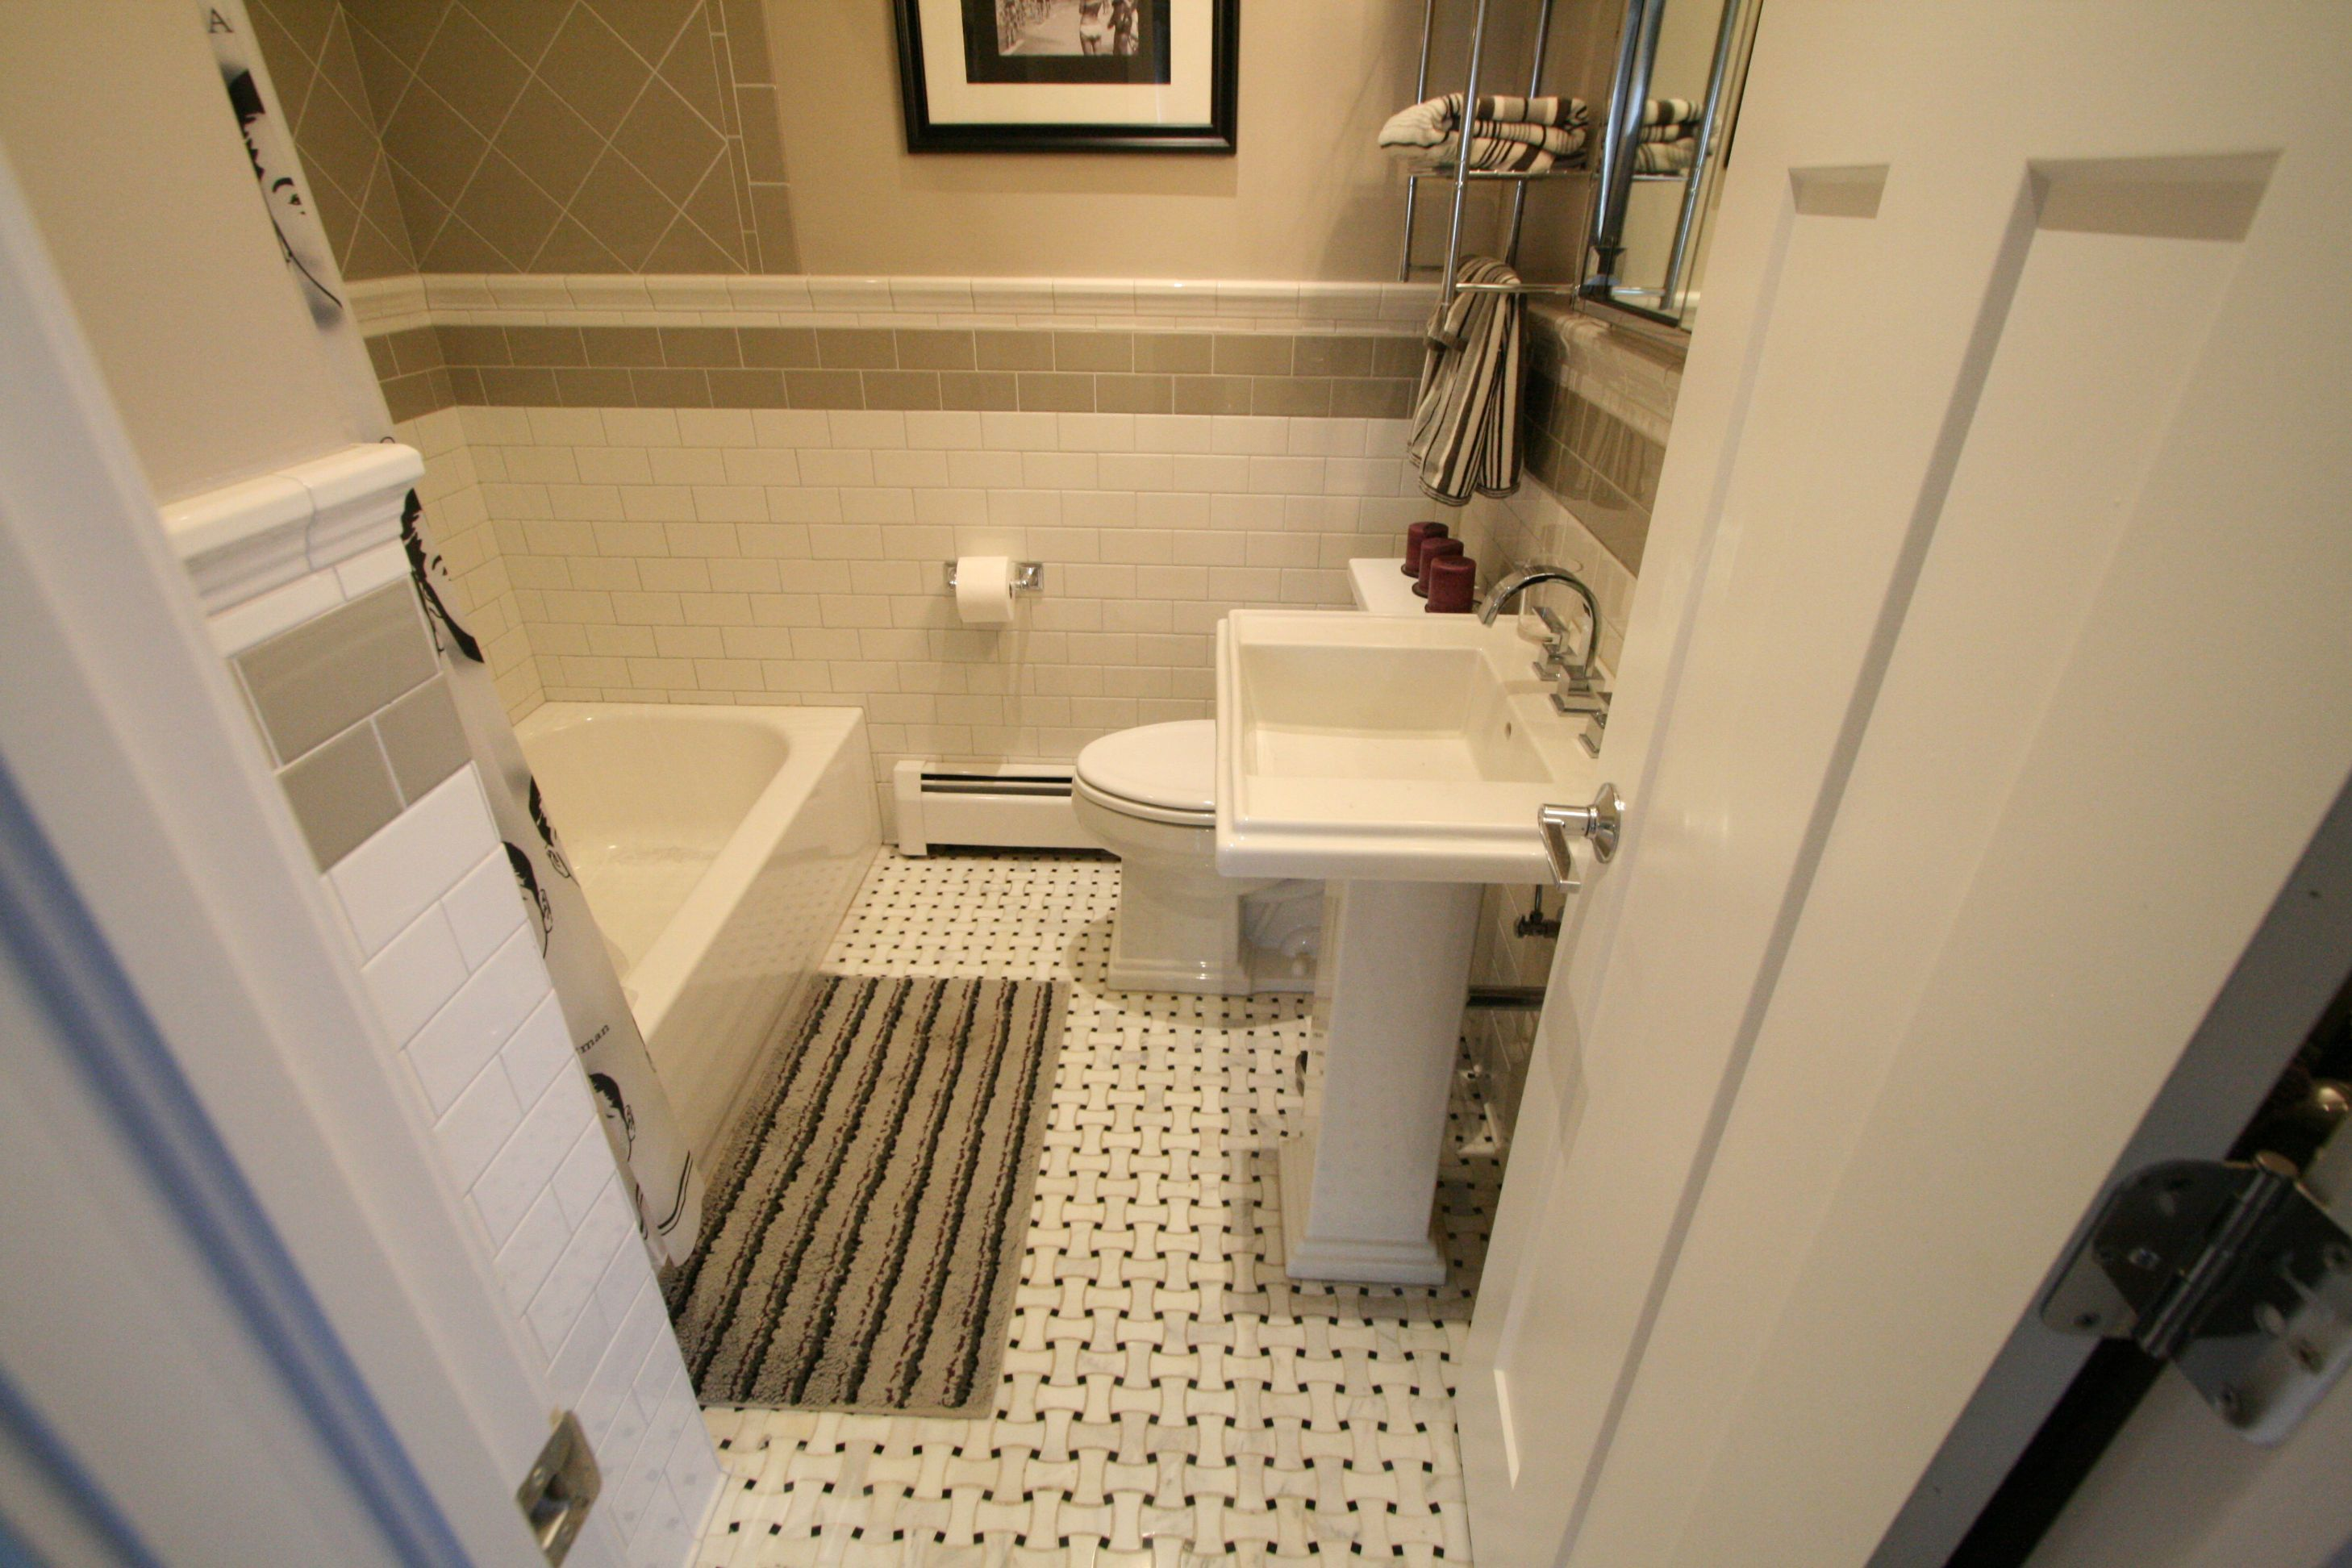 40 wonderful pictures and ideas of 1920s bathroom tile designs ...